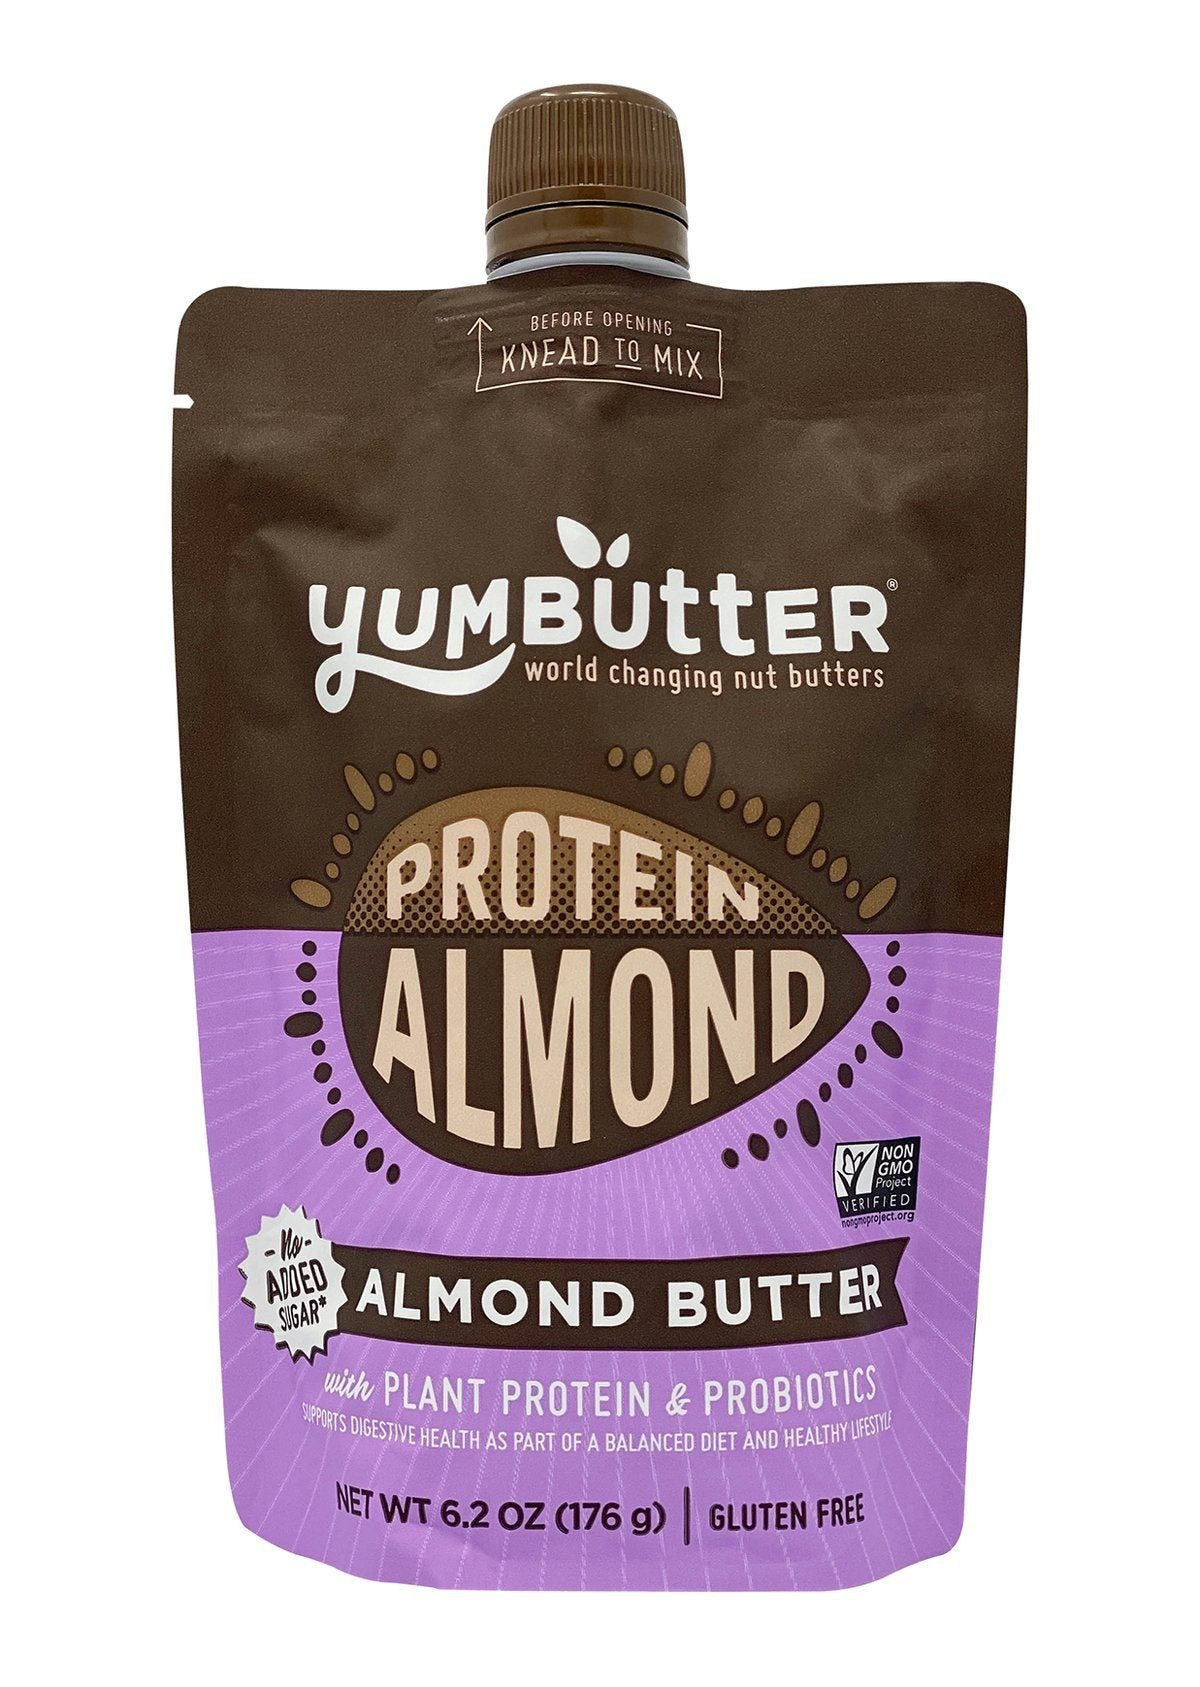 Food & Drink - Yum Butter - Almond Butter With Probiotics & Plant Protein, 176g